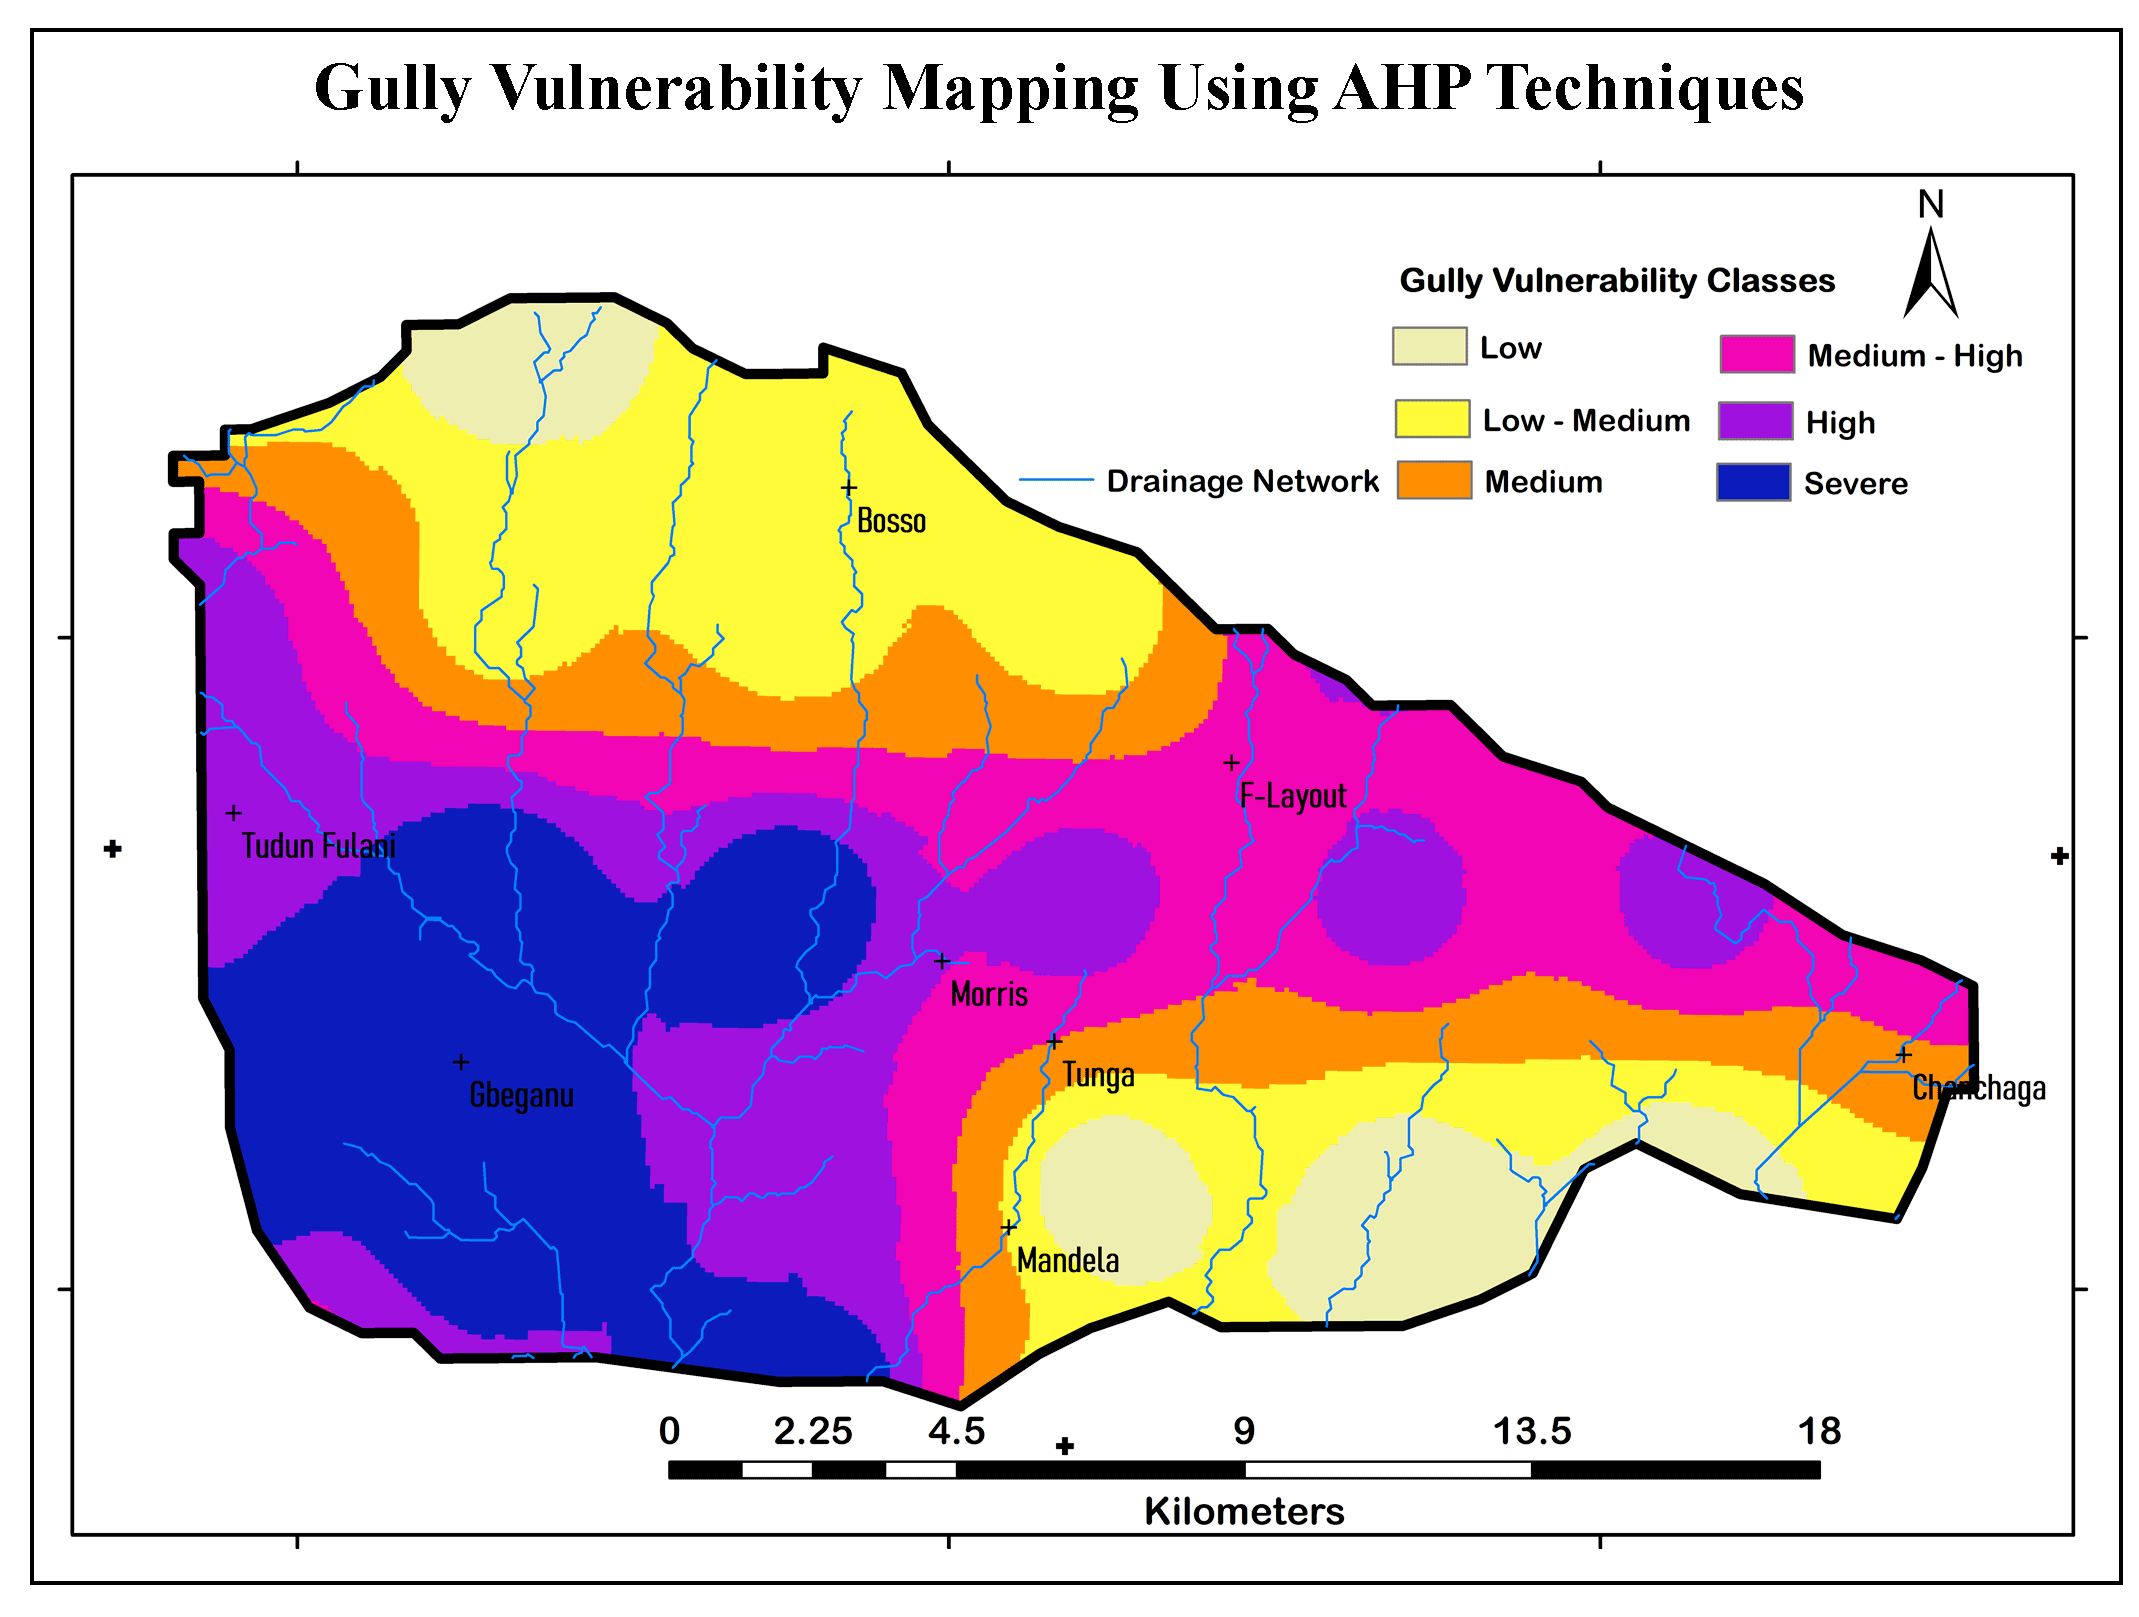 GIS-based MCDA for Gully Vulnerability Mapping Using AHP Techniques